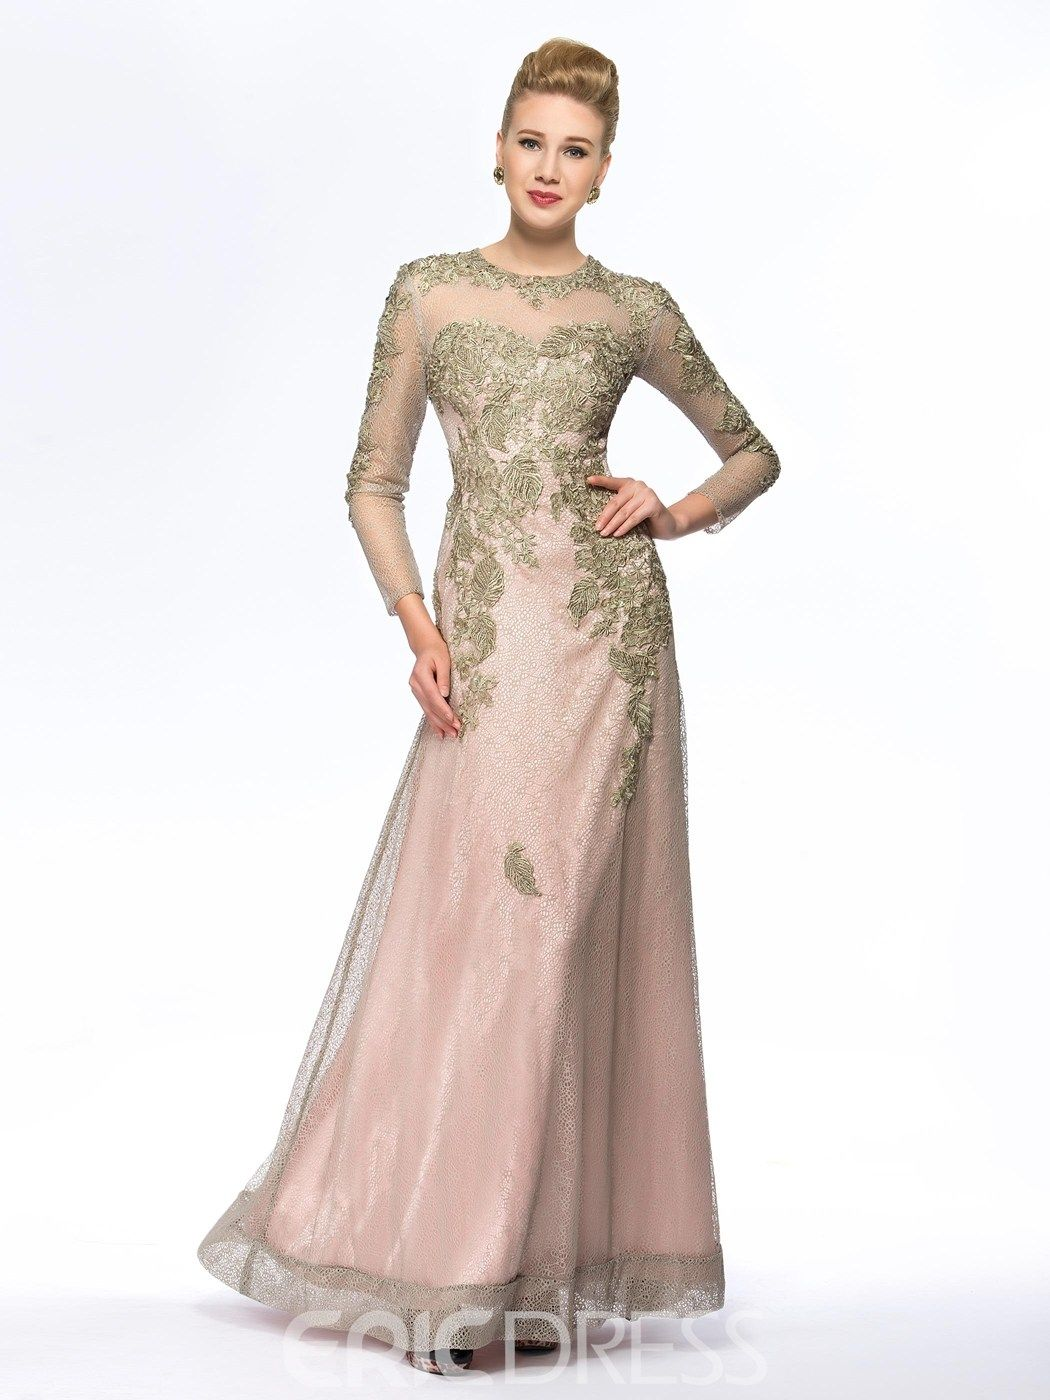 Classy Jewel Neck Long Sleeves Mother of the Bride Dress #MotheroftheBrideDresses #Classy #Jewel #Neck #Long #Sleeves #Mother #Bride #Dress